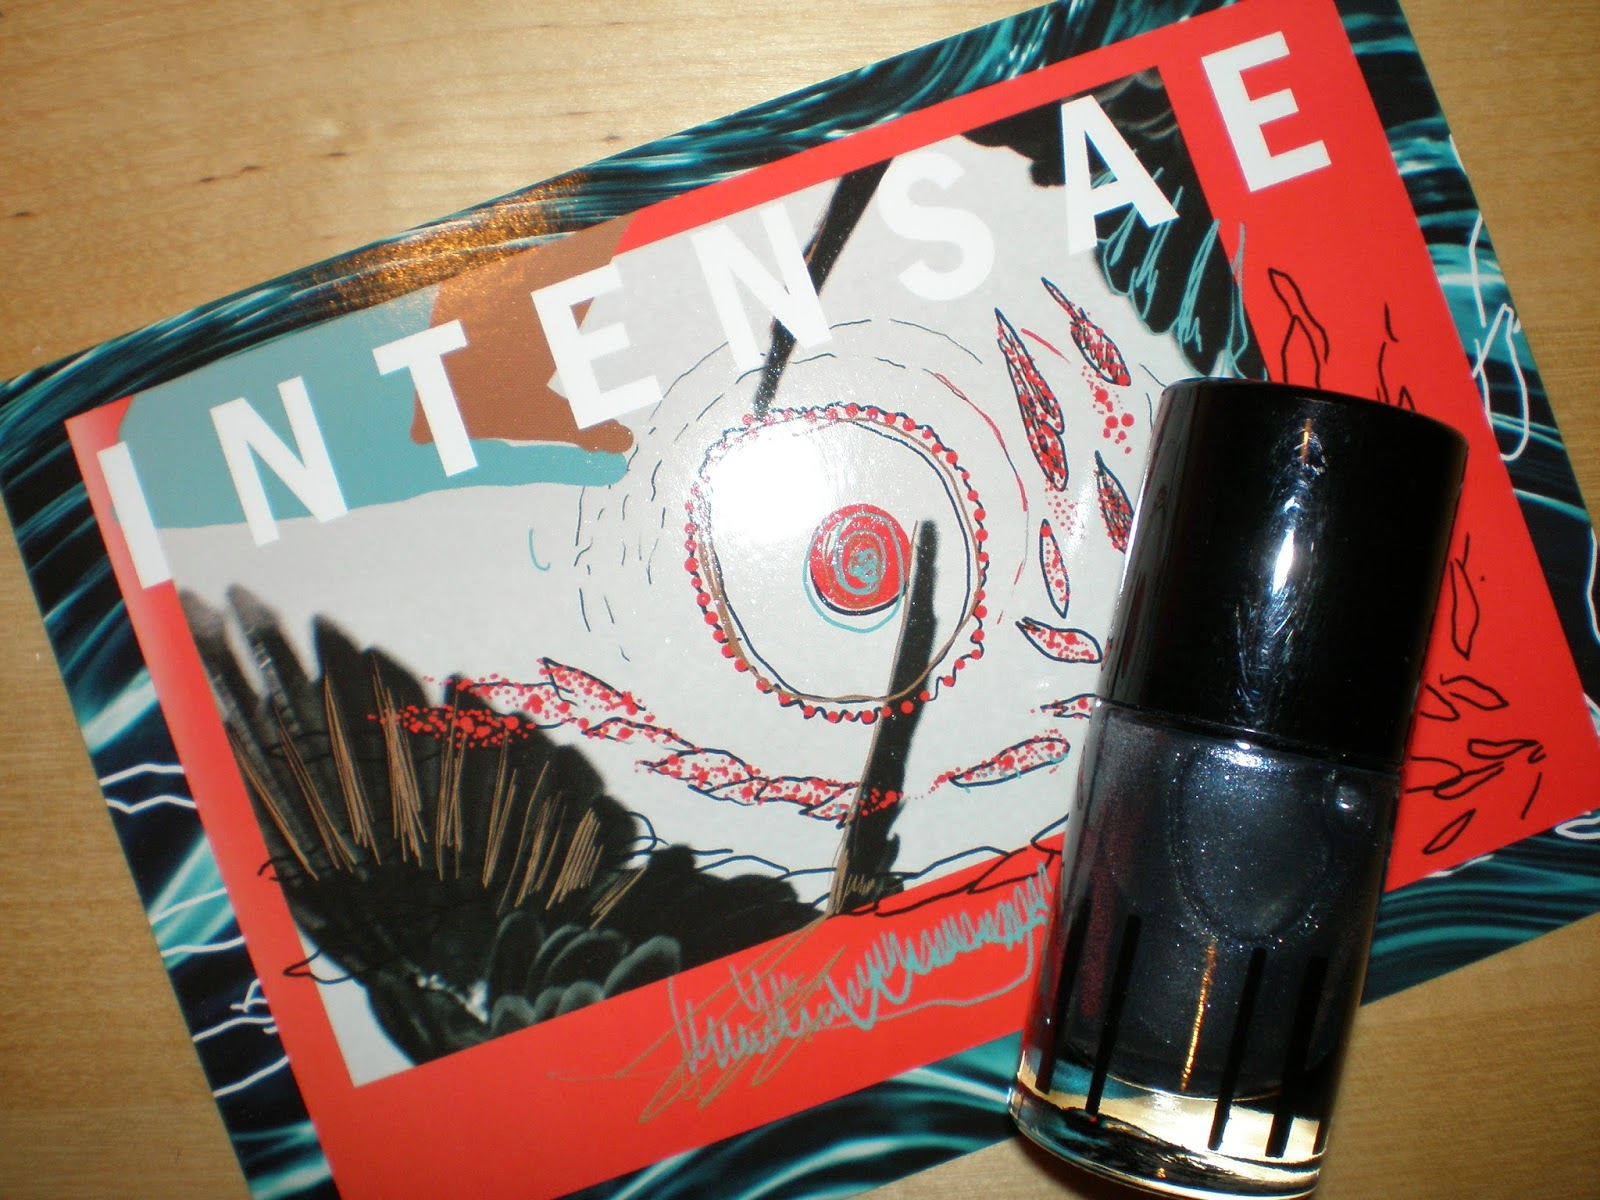 Intensae Nail polish in Obliteration